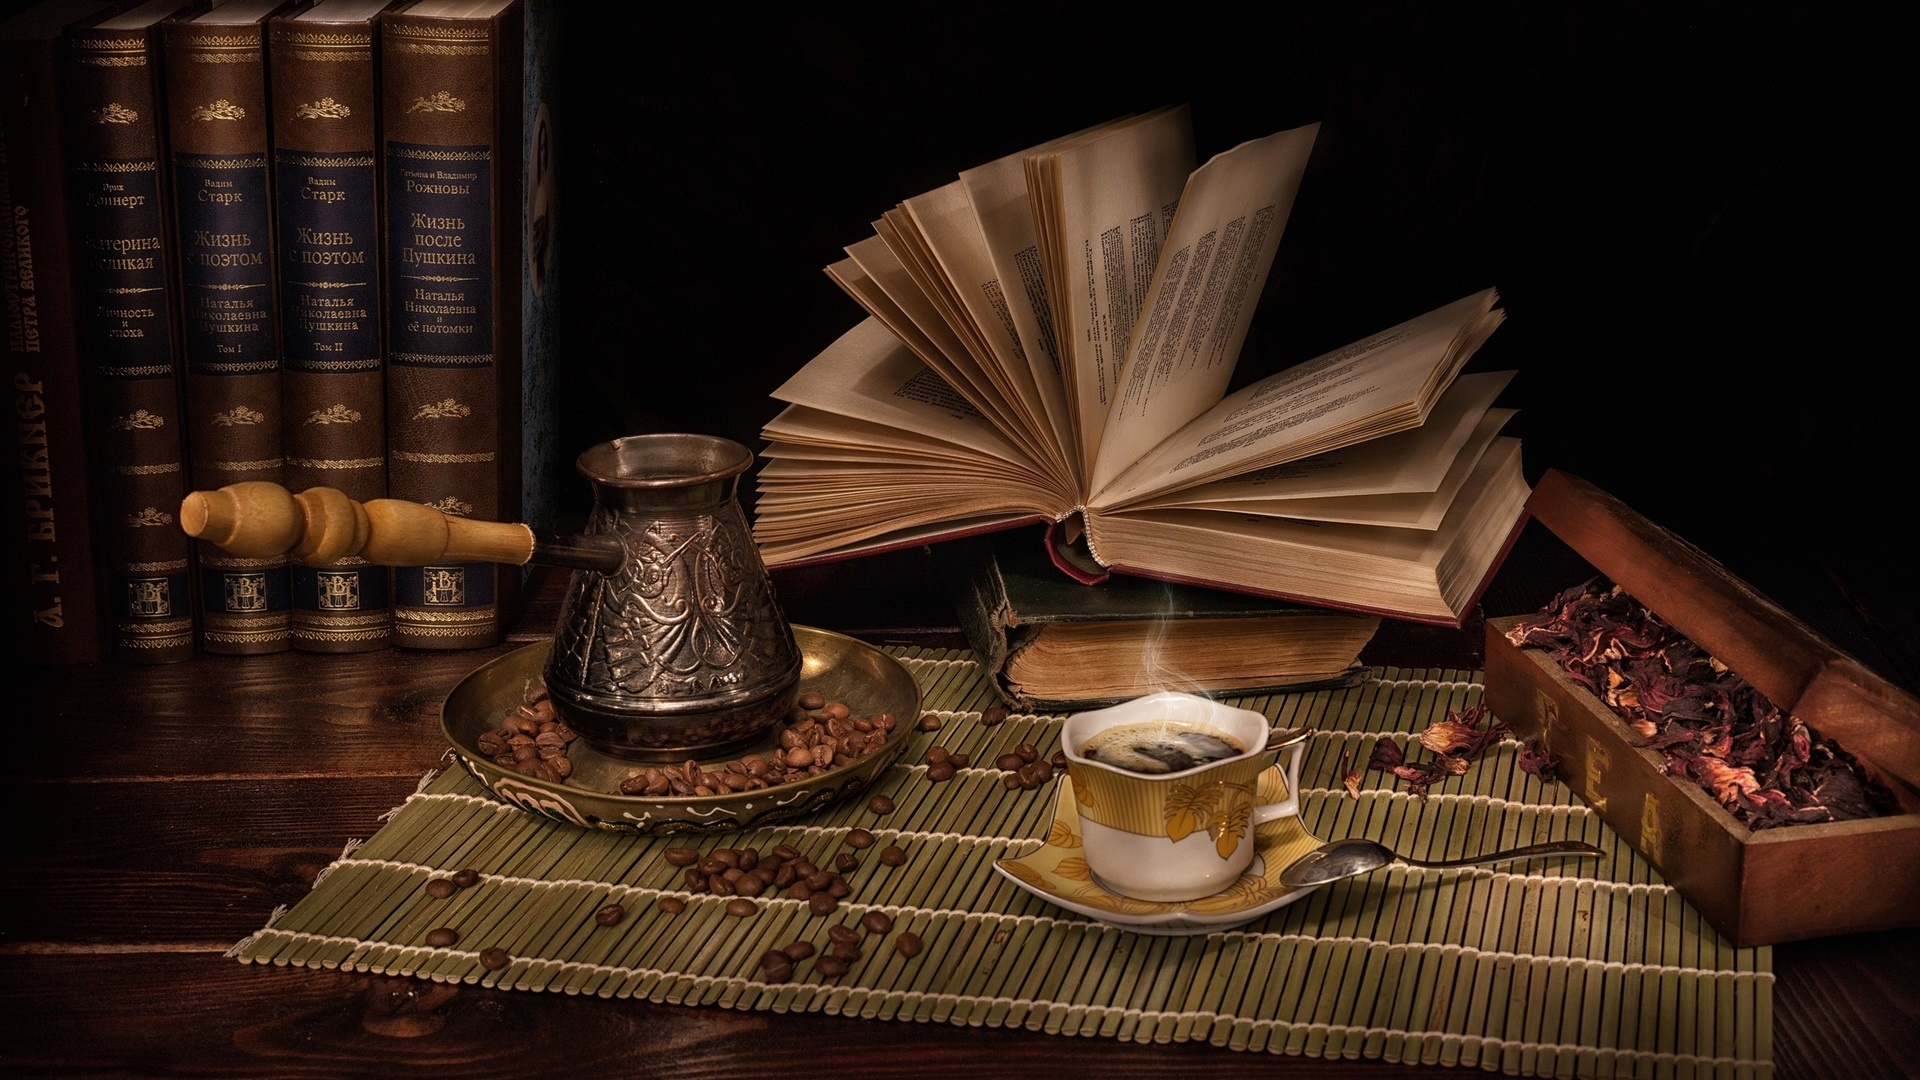 Book And Coffee wallpaper for pc